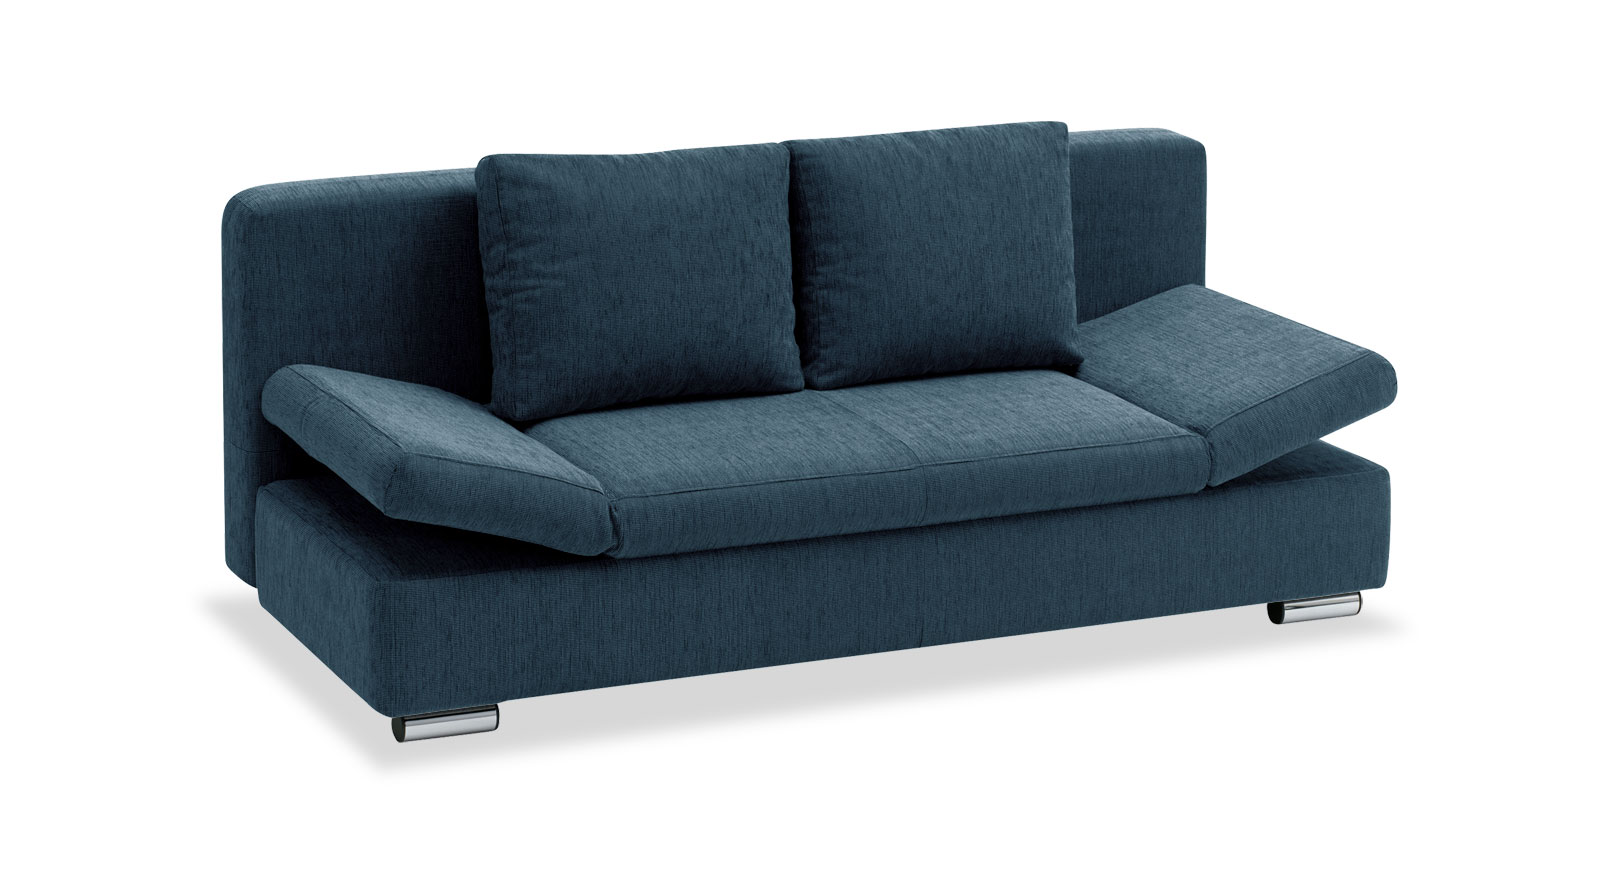 Schlafsofa New-Jamboree mit Webstoff in Blau